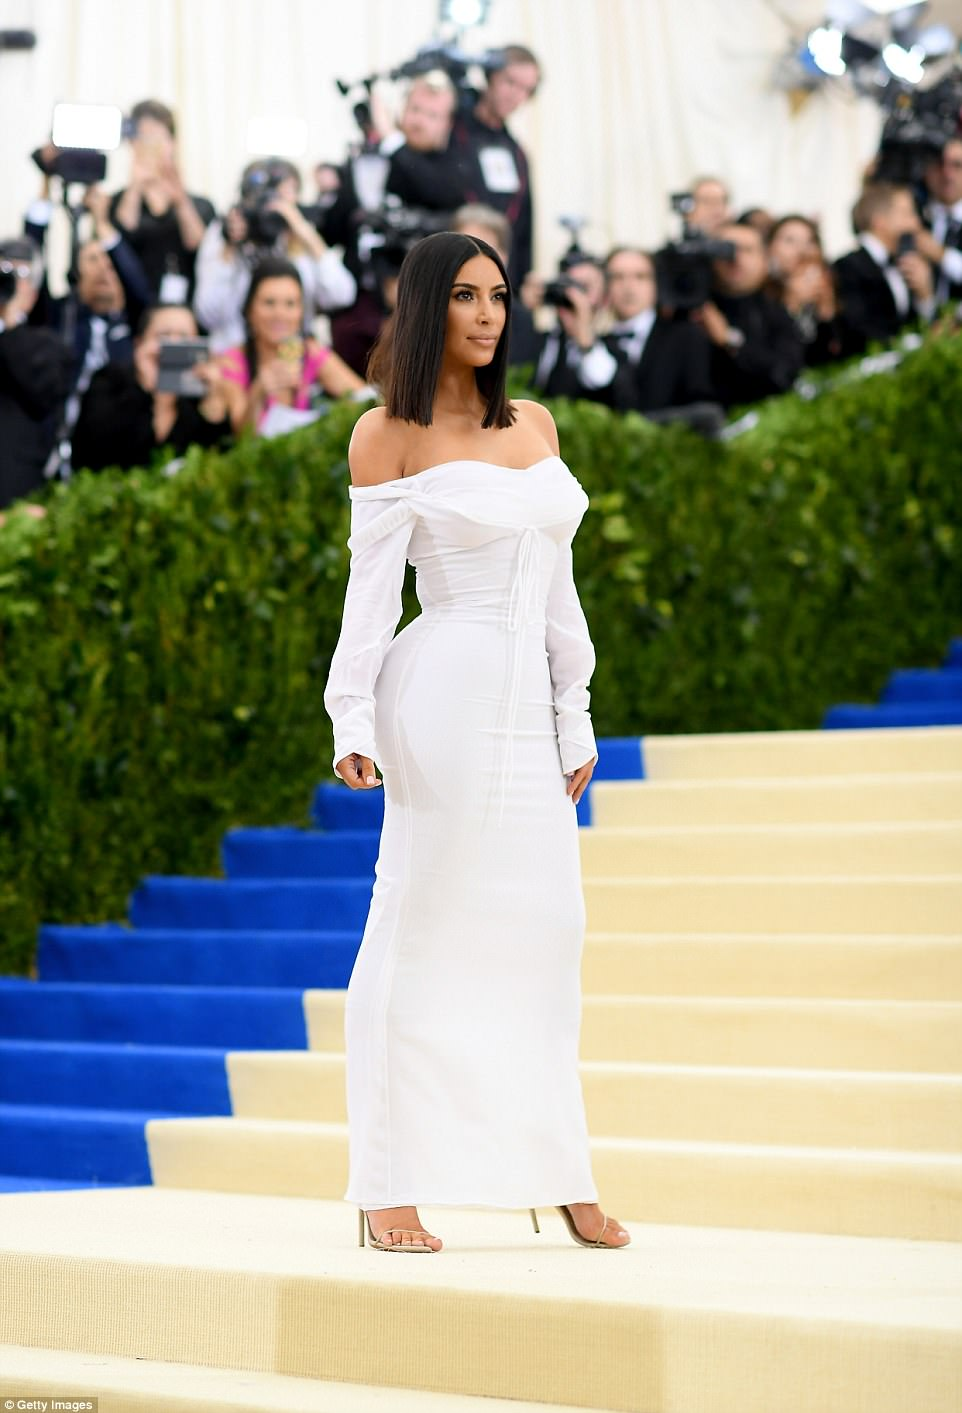 Kim Kardashian at MET Gala in New York